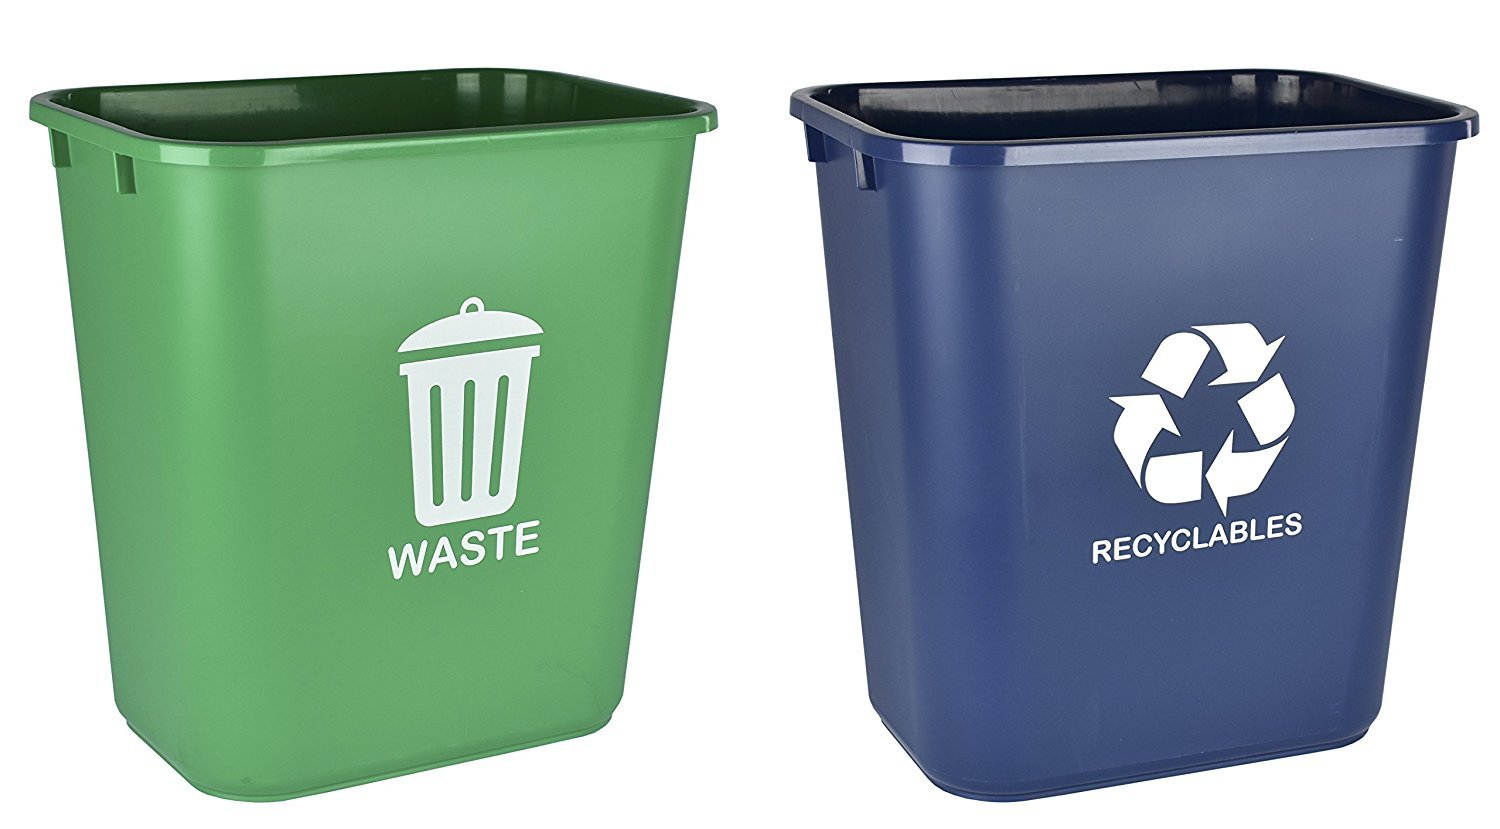 Acrimet Wastebasket for Recycling and Waste 27QT (2 Units) (Green and Blue) by Acrimet